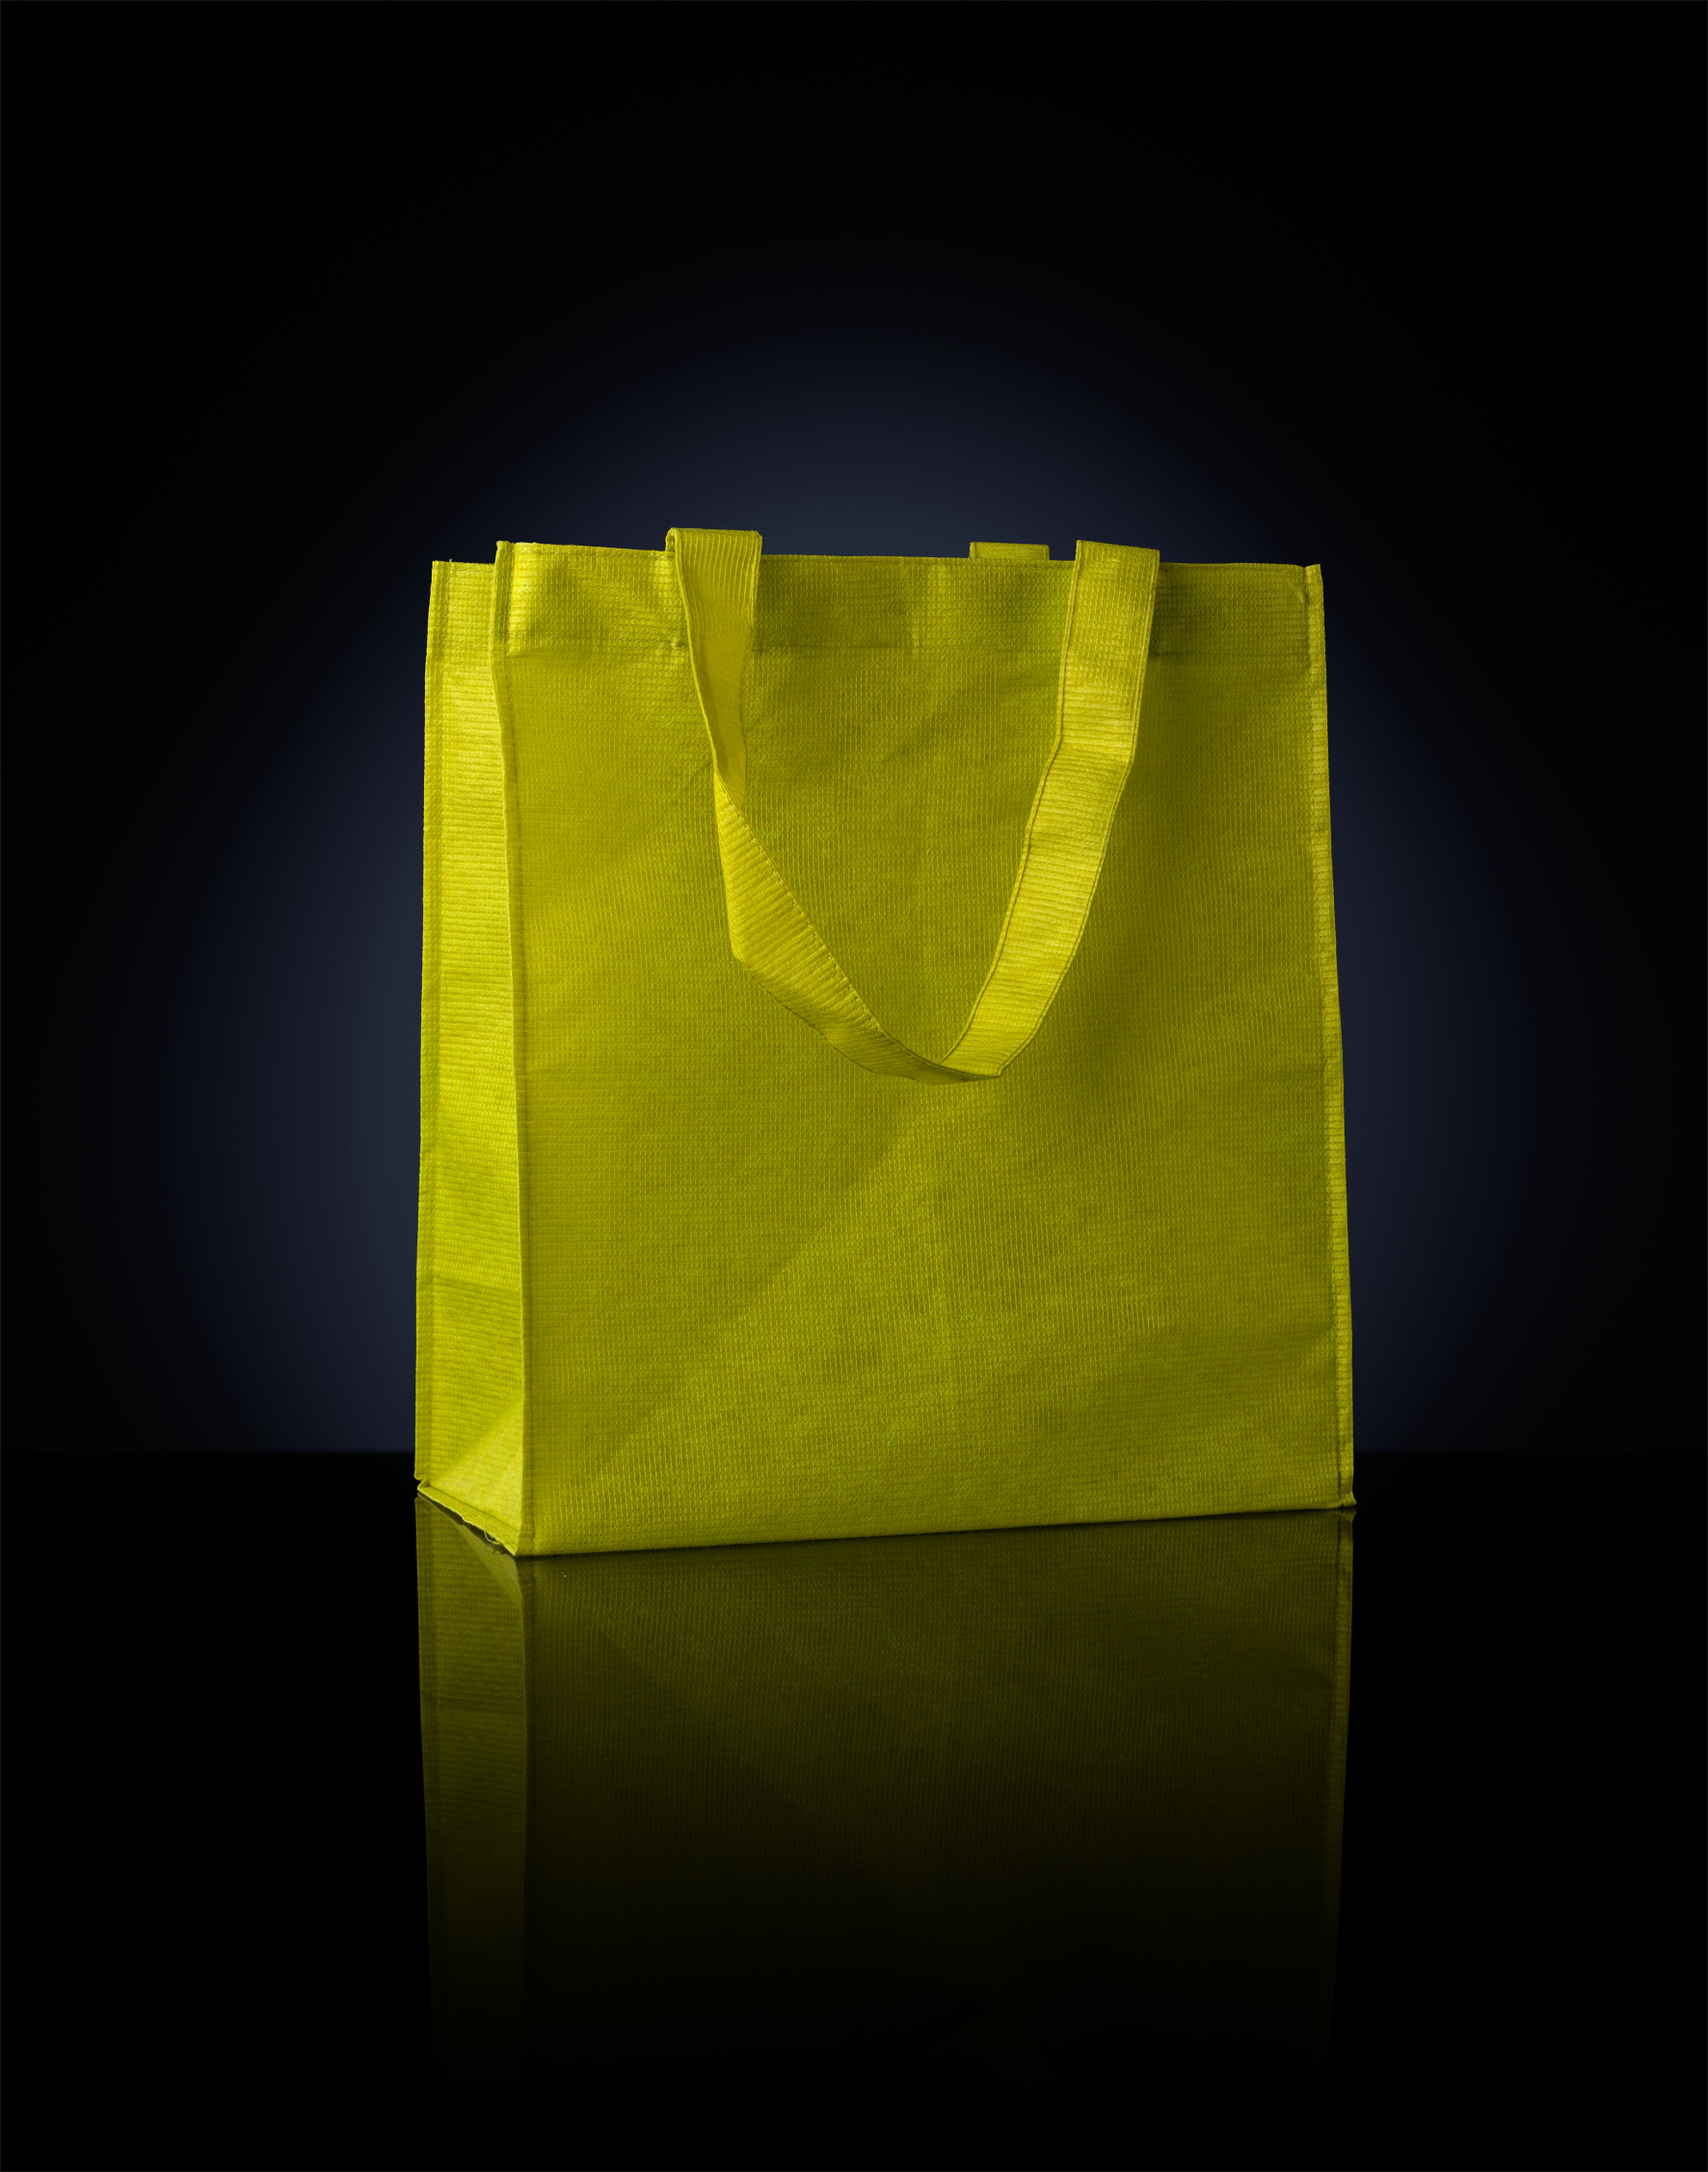 Scientists find reusable PET grocery bags a top choice to reduce plastic pollution in SA